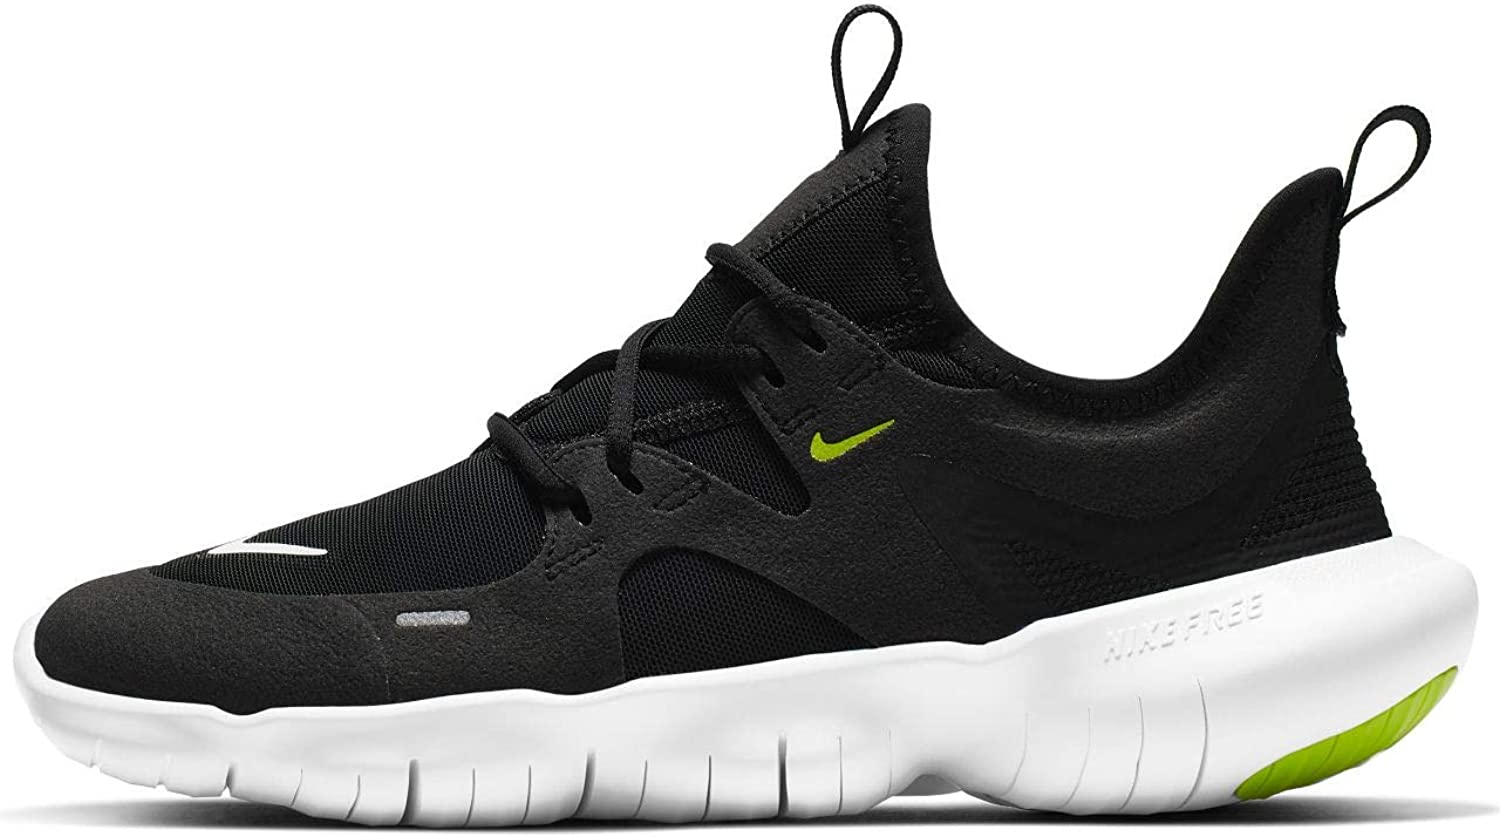 Nike Unisex Adults Free Rn 5.0 (gs) Track & Field shoes, Multicolour (Black White Anthracite Volt 000), 6 UK